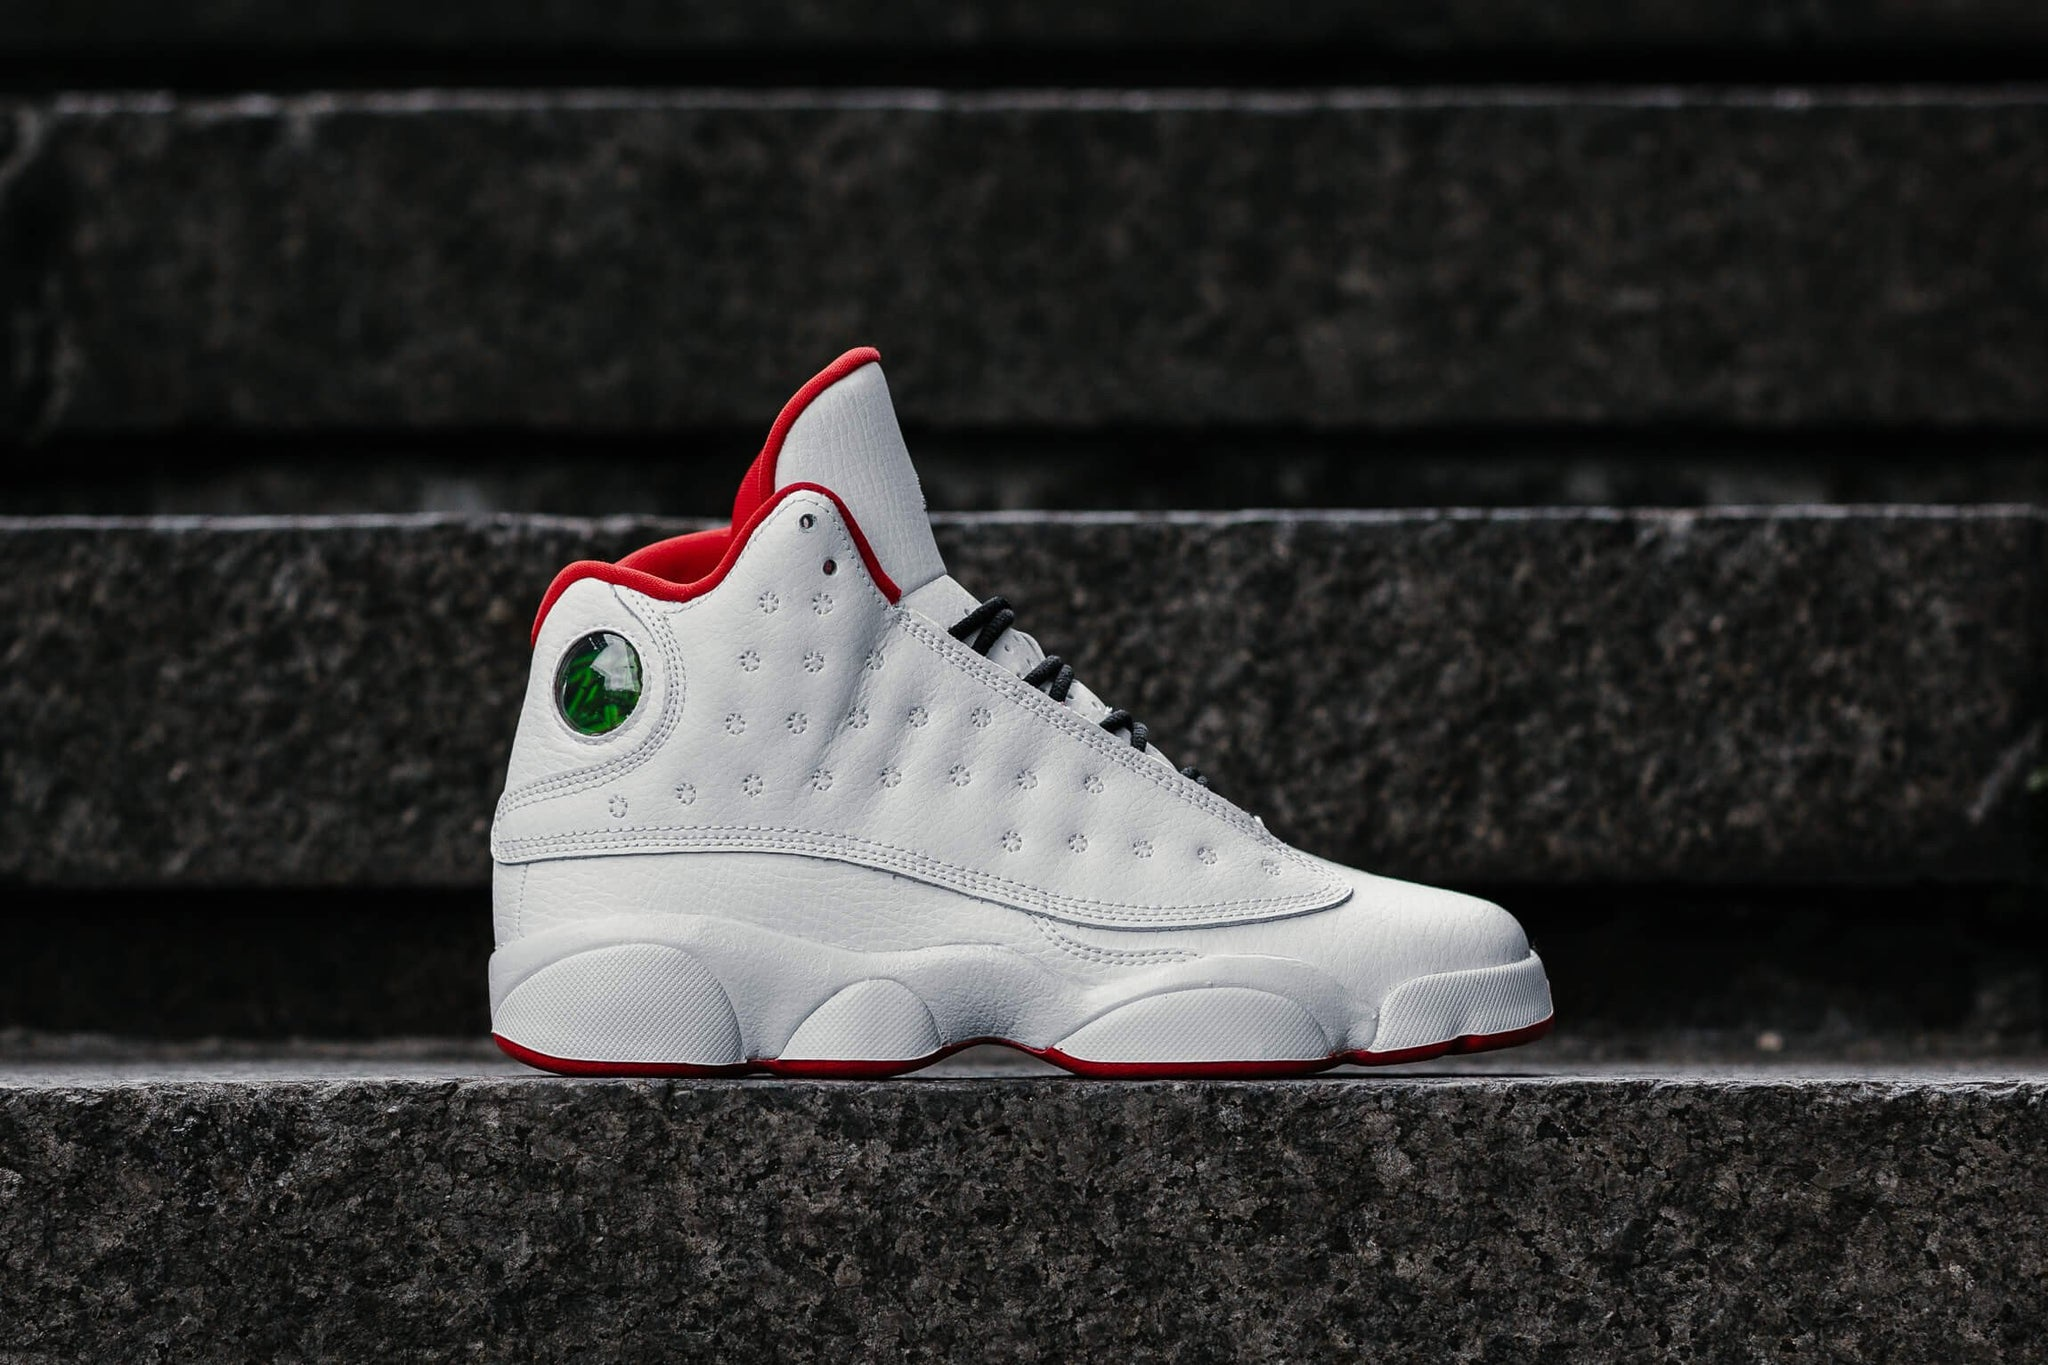 Air Jordan 13 Retro GS 'History Of Flight' 414574-103